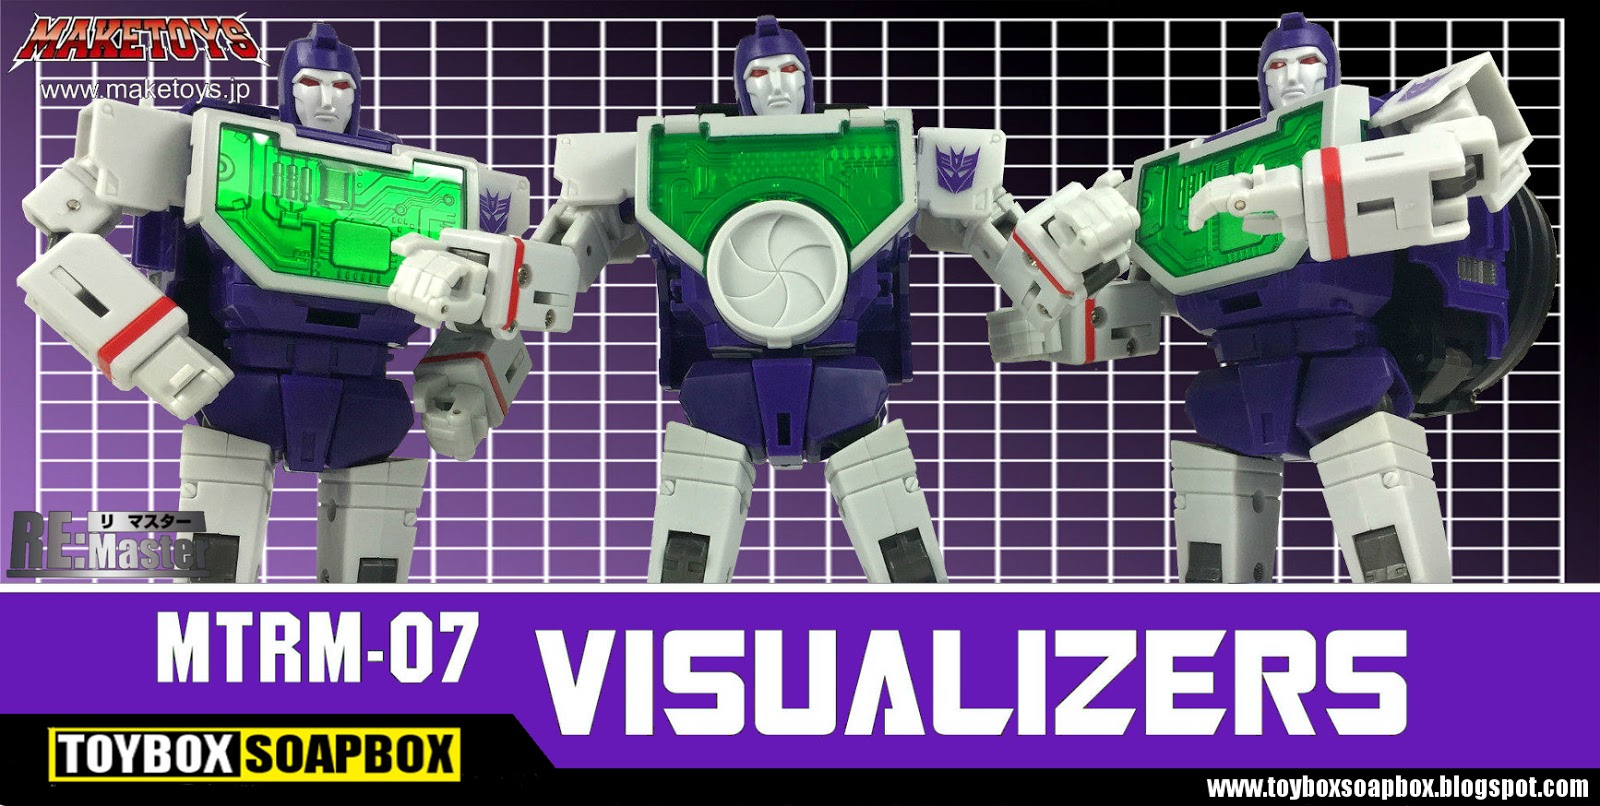 how tall is maketoys visualizer